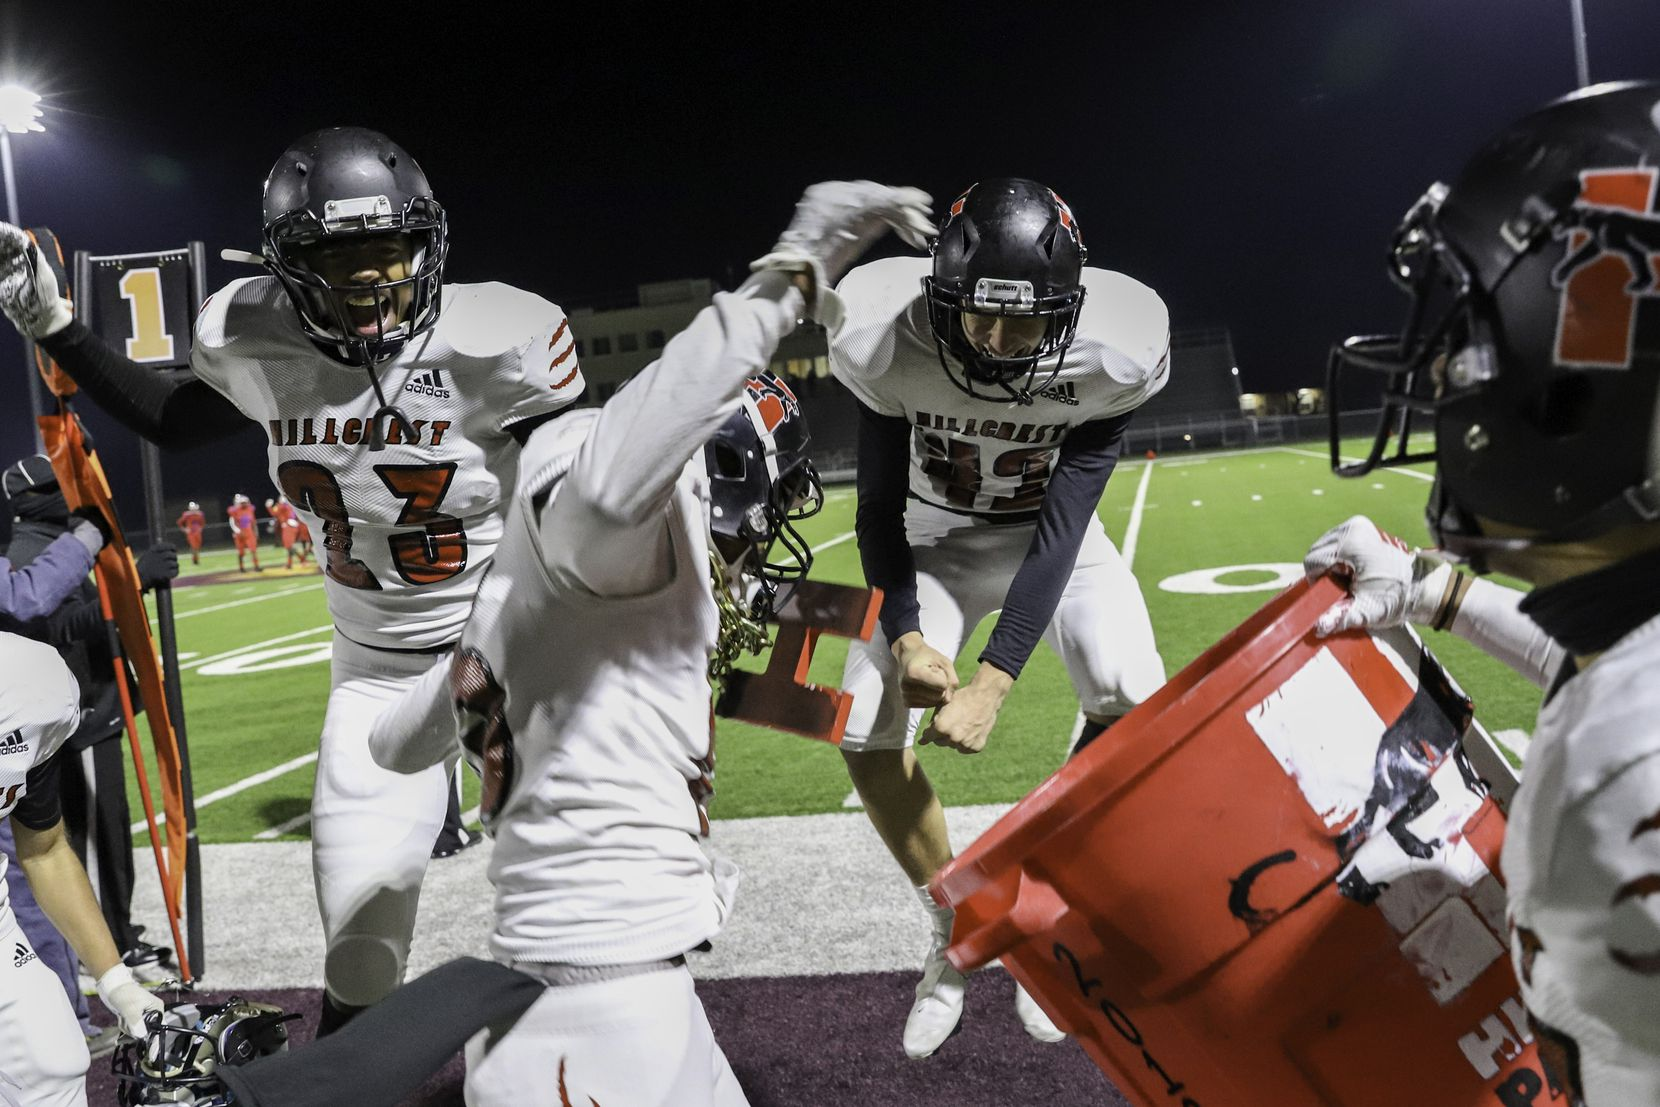 Hillcrest defensive back Donald Olusegun (15) celebrates a turnover with linebackers Jakobi Hardy (23) and Wesley Morris (42) during the second half against Spruce at James Ray Henry Stadium in Seagoville, Texas, Friday, December 4, 2020. (Elias Valverde II / Special Contributor)